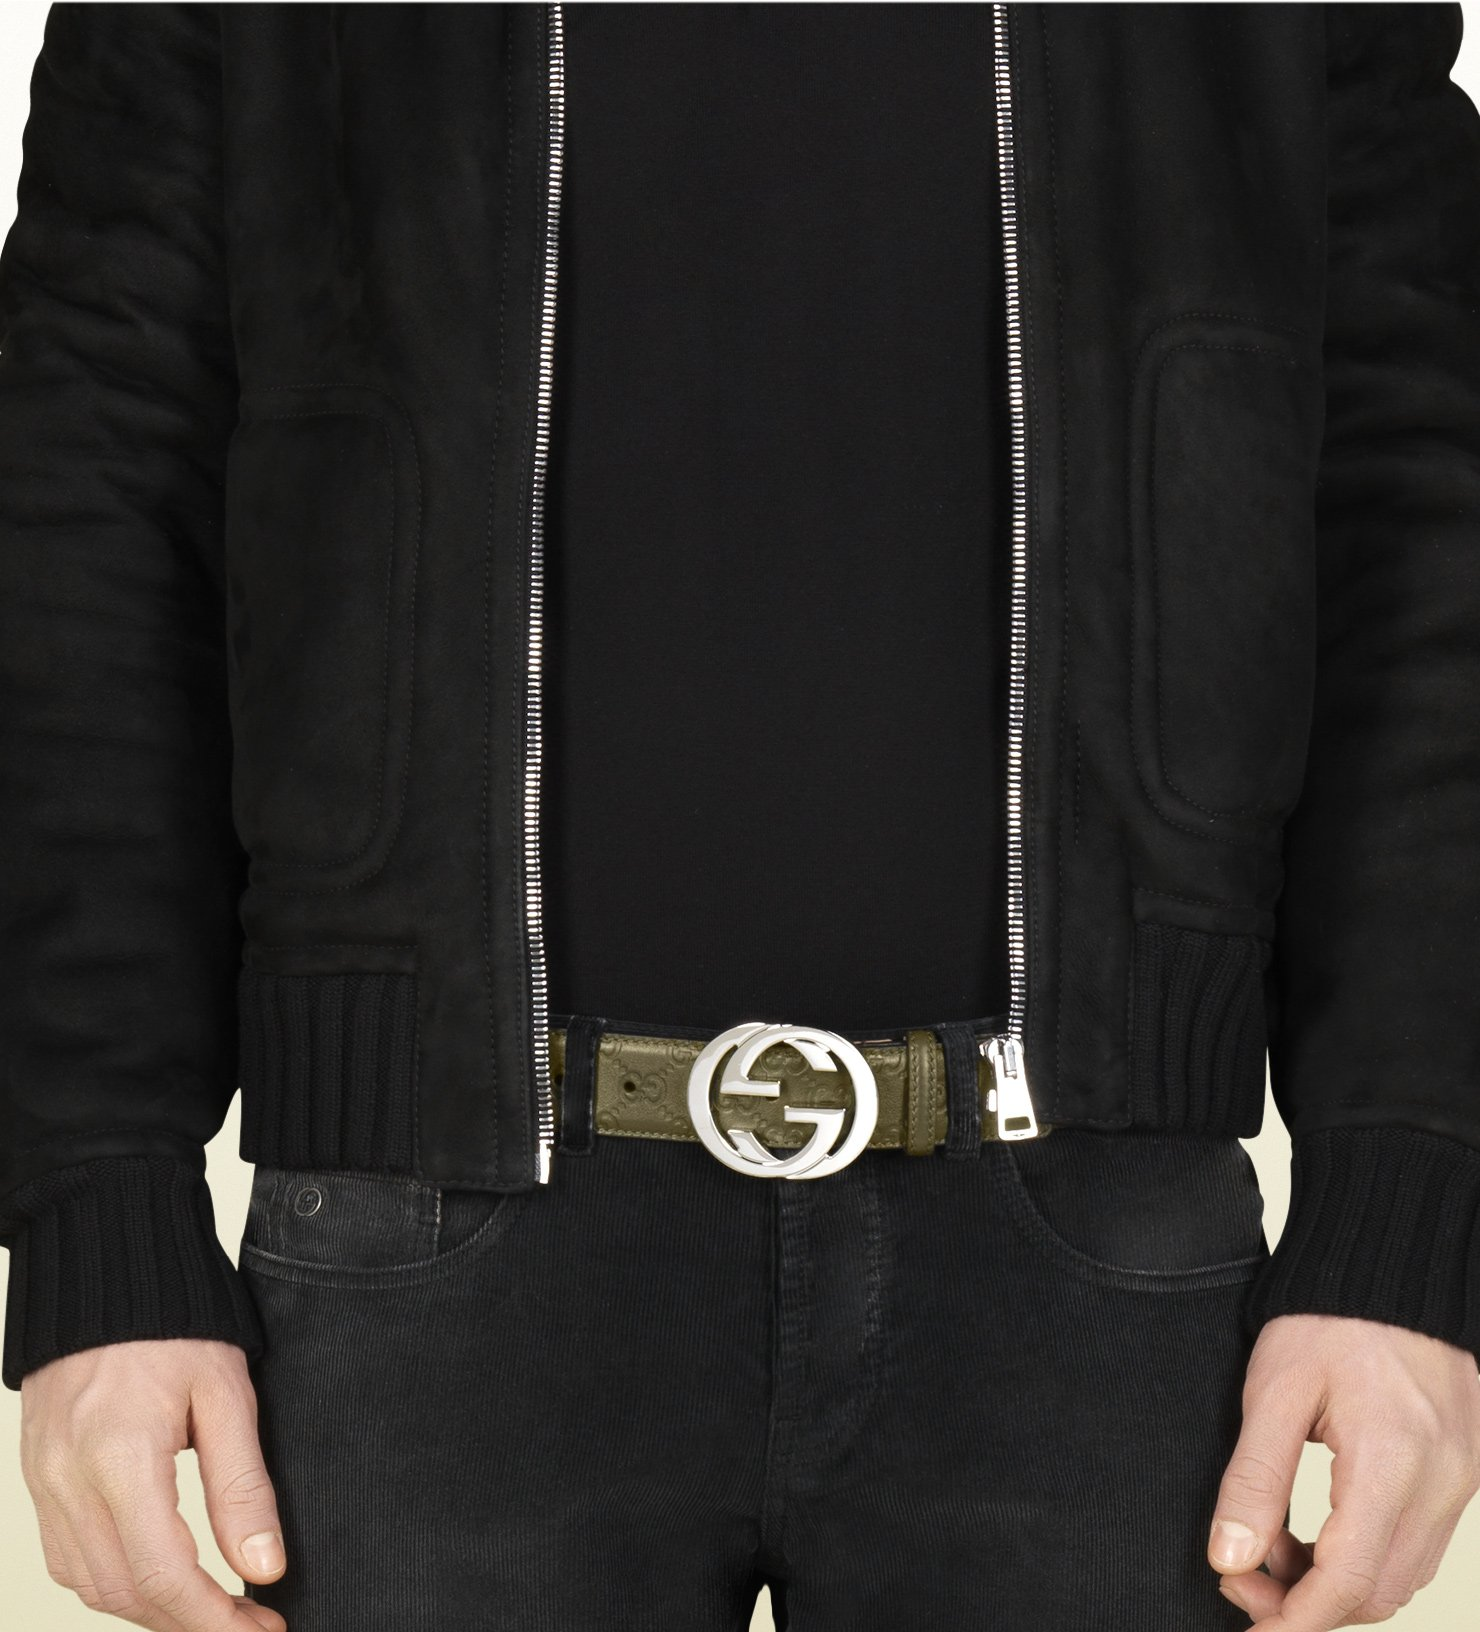 035ada822 Gucci Guccissima Leather Belt with Interlocking G Buckle in Green ...